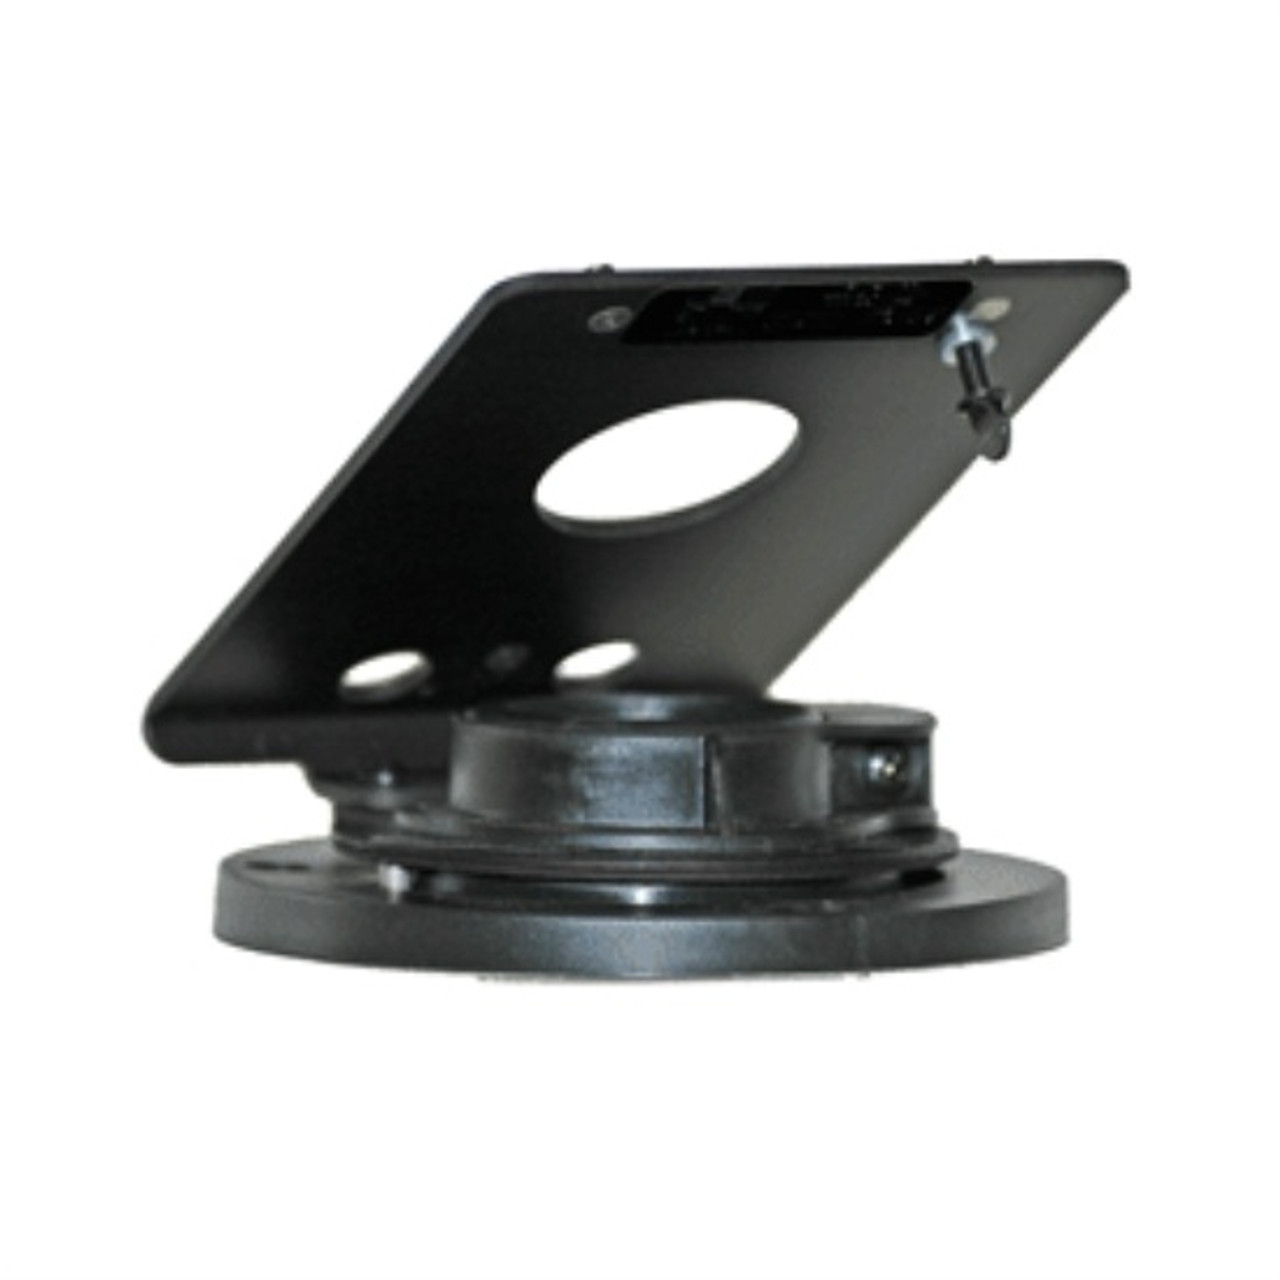 Swivel Stands Credit Card Stand Fixed Angle Open Hole VeriFone MX850